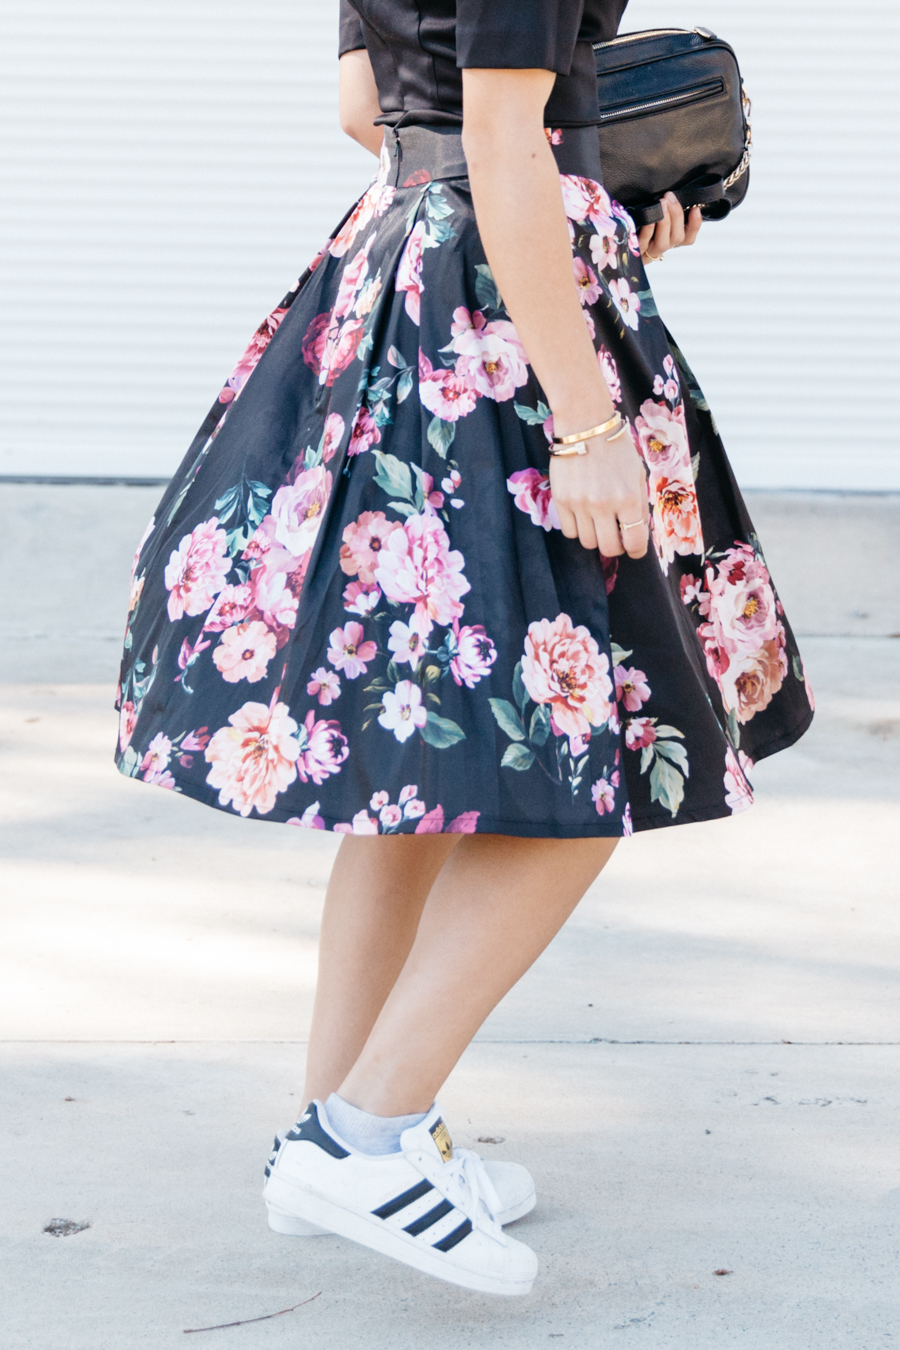 Floral box skirt street style.